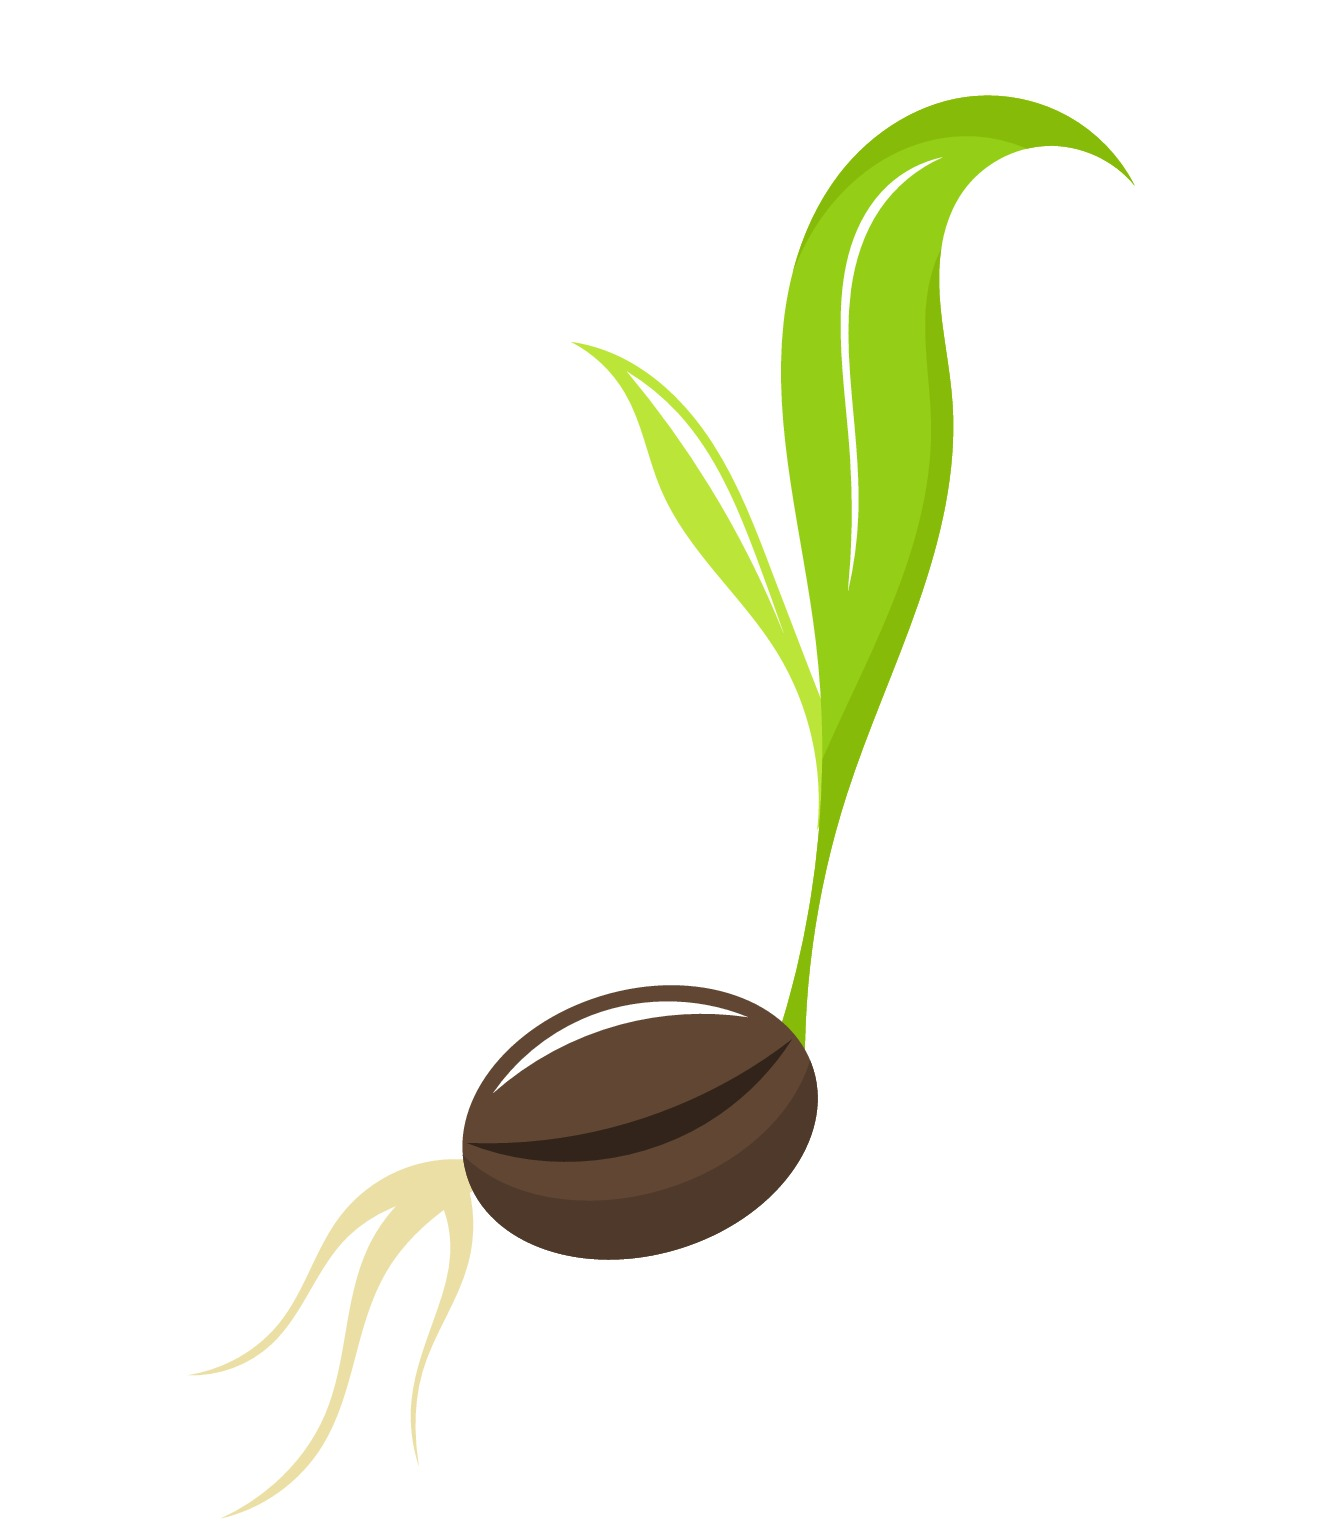 Seed clipart plant seed All emaze plants about